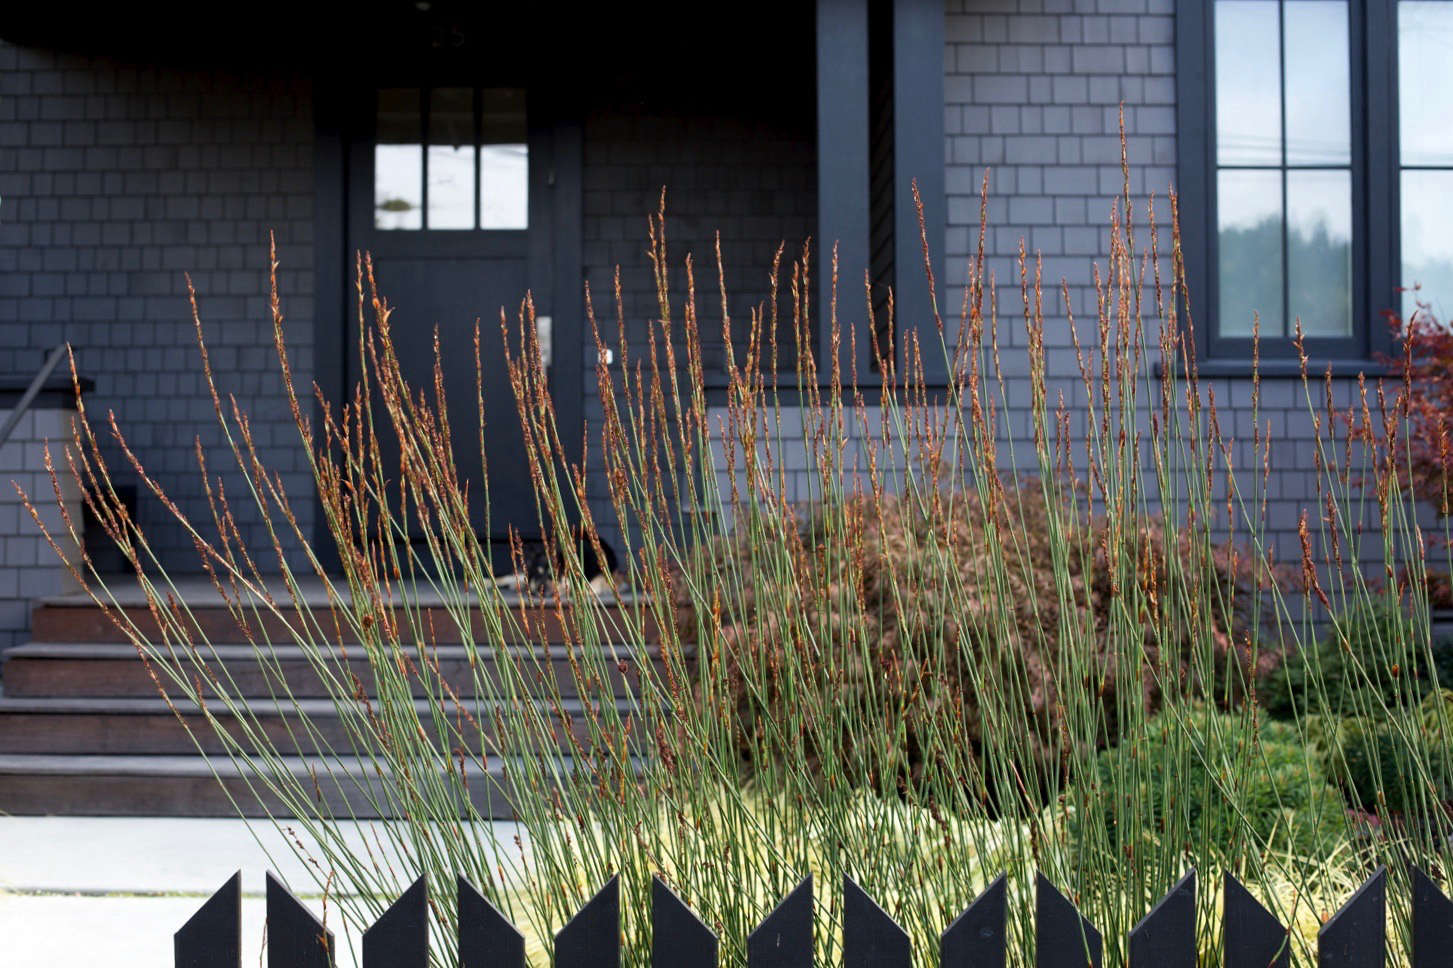 A curtain of cape rush (Chrondopetalum elephantinum) will reach heights of from 4 to 6 feet, creating an airy screening layer behind the picket fece.